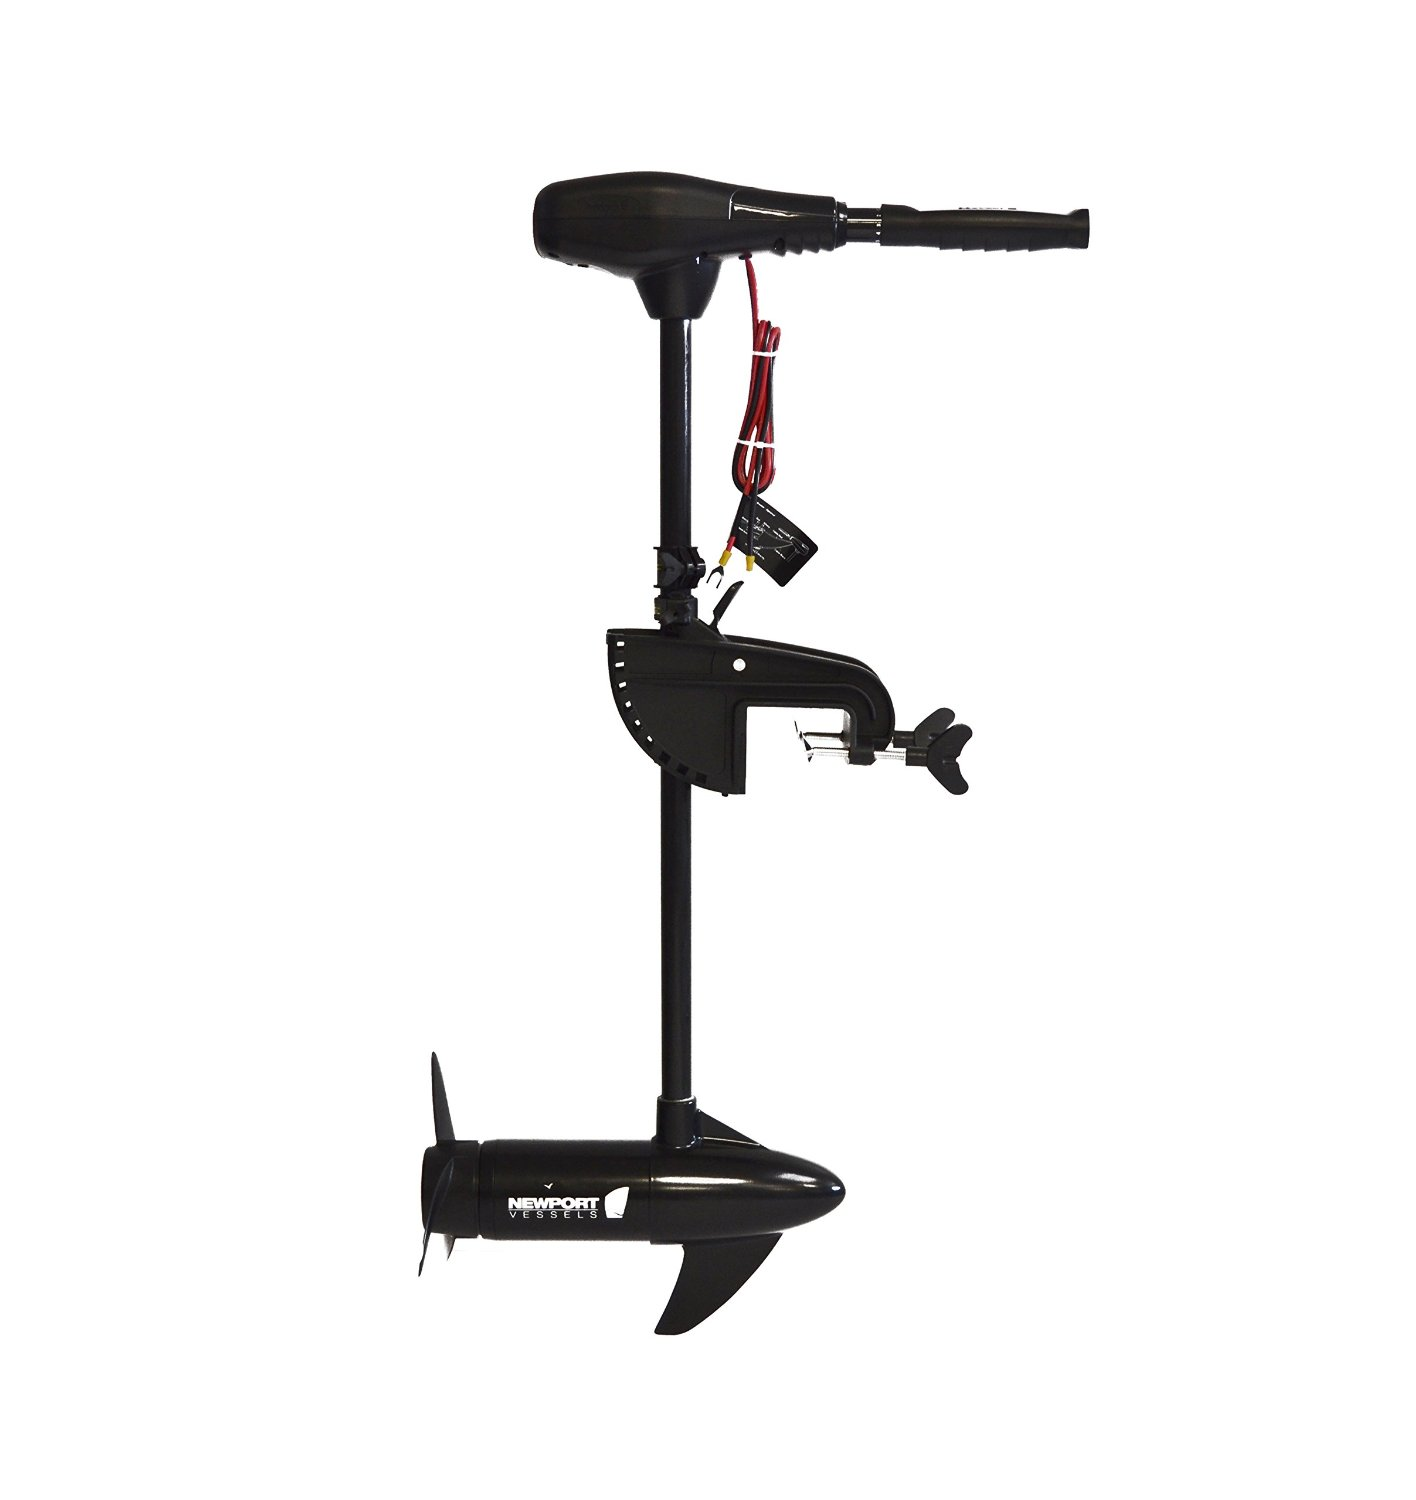 Best Saltwater Trolling Motor Reviews